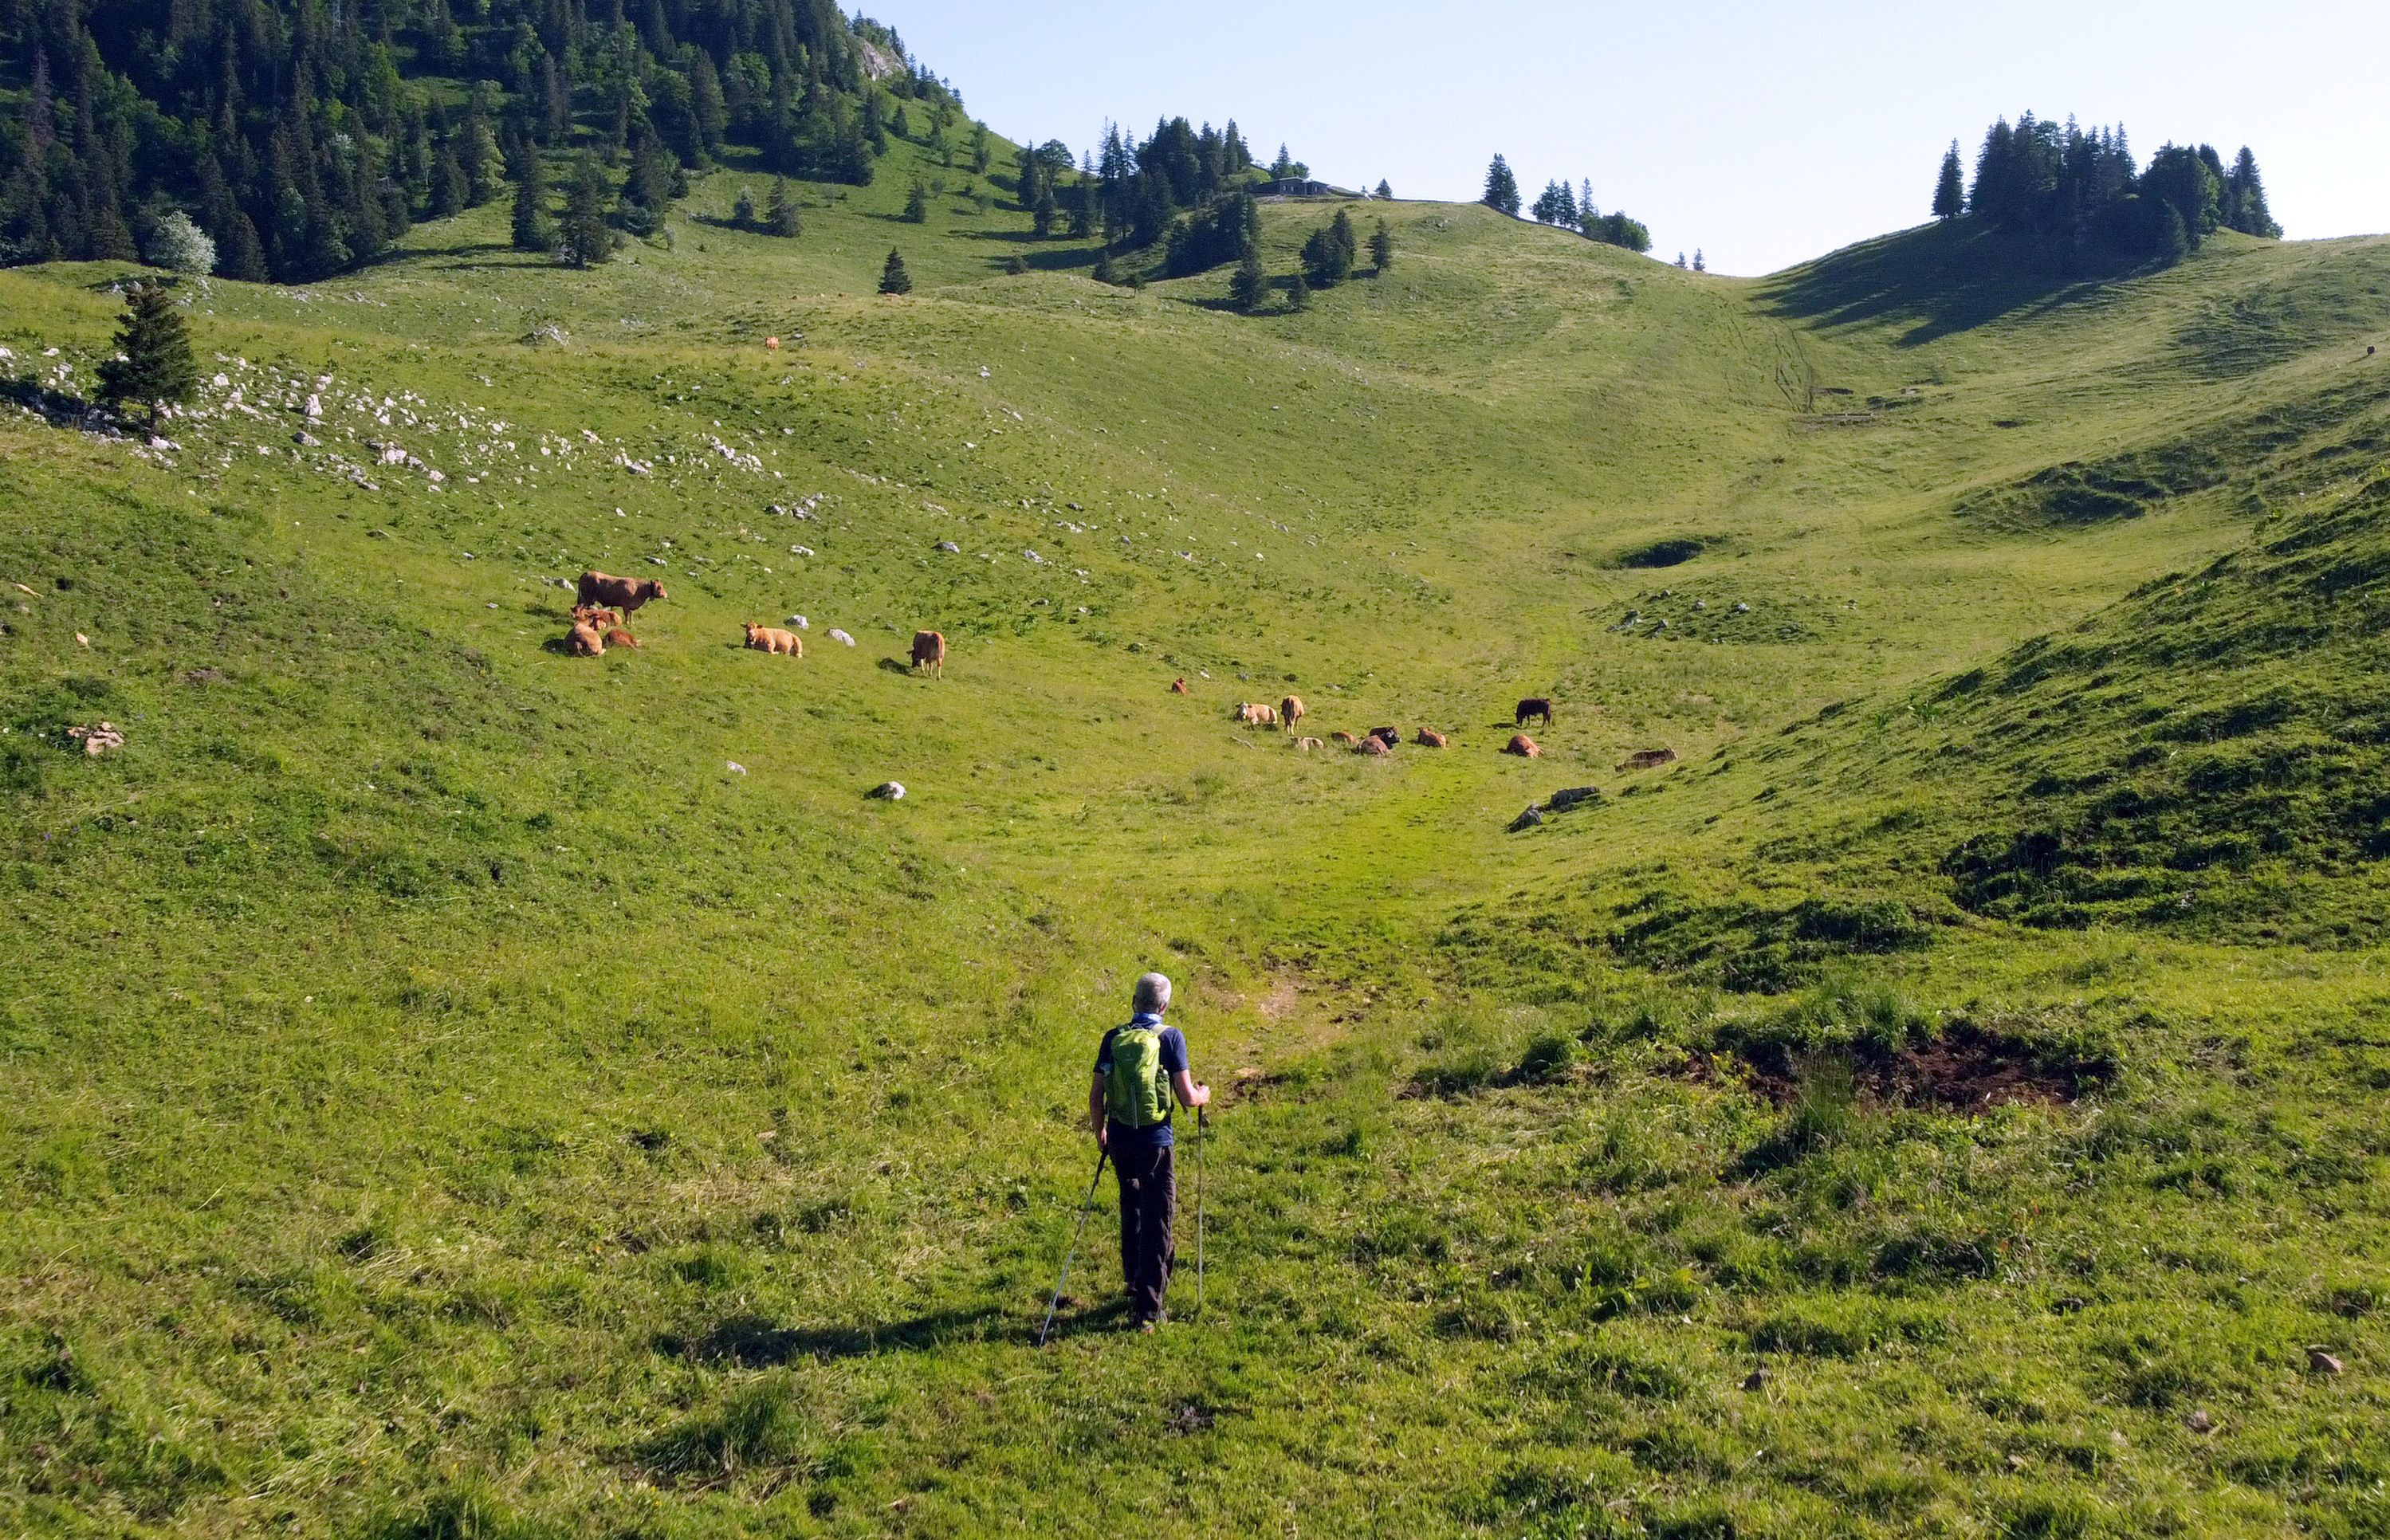 Yves Auberson, who has Parkinson disease and recently walked 1122 kilometres through the Alps, hikes in a pasture at La Dole in Cheserex near Geneva, Switzerland, July 19, 2021. REUTERS/Denis Balibouse